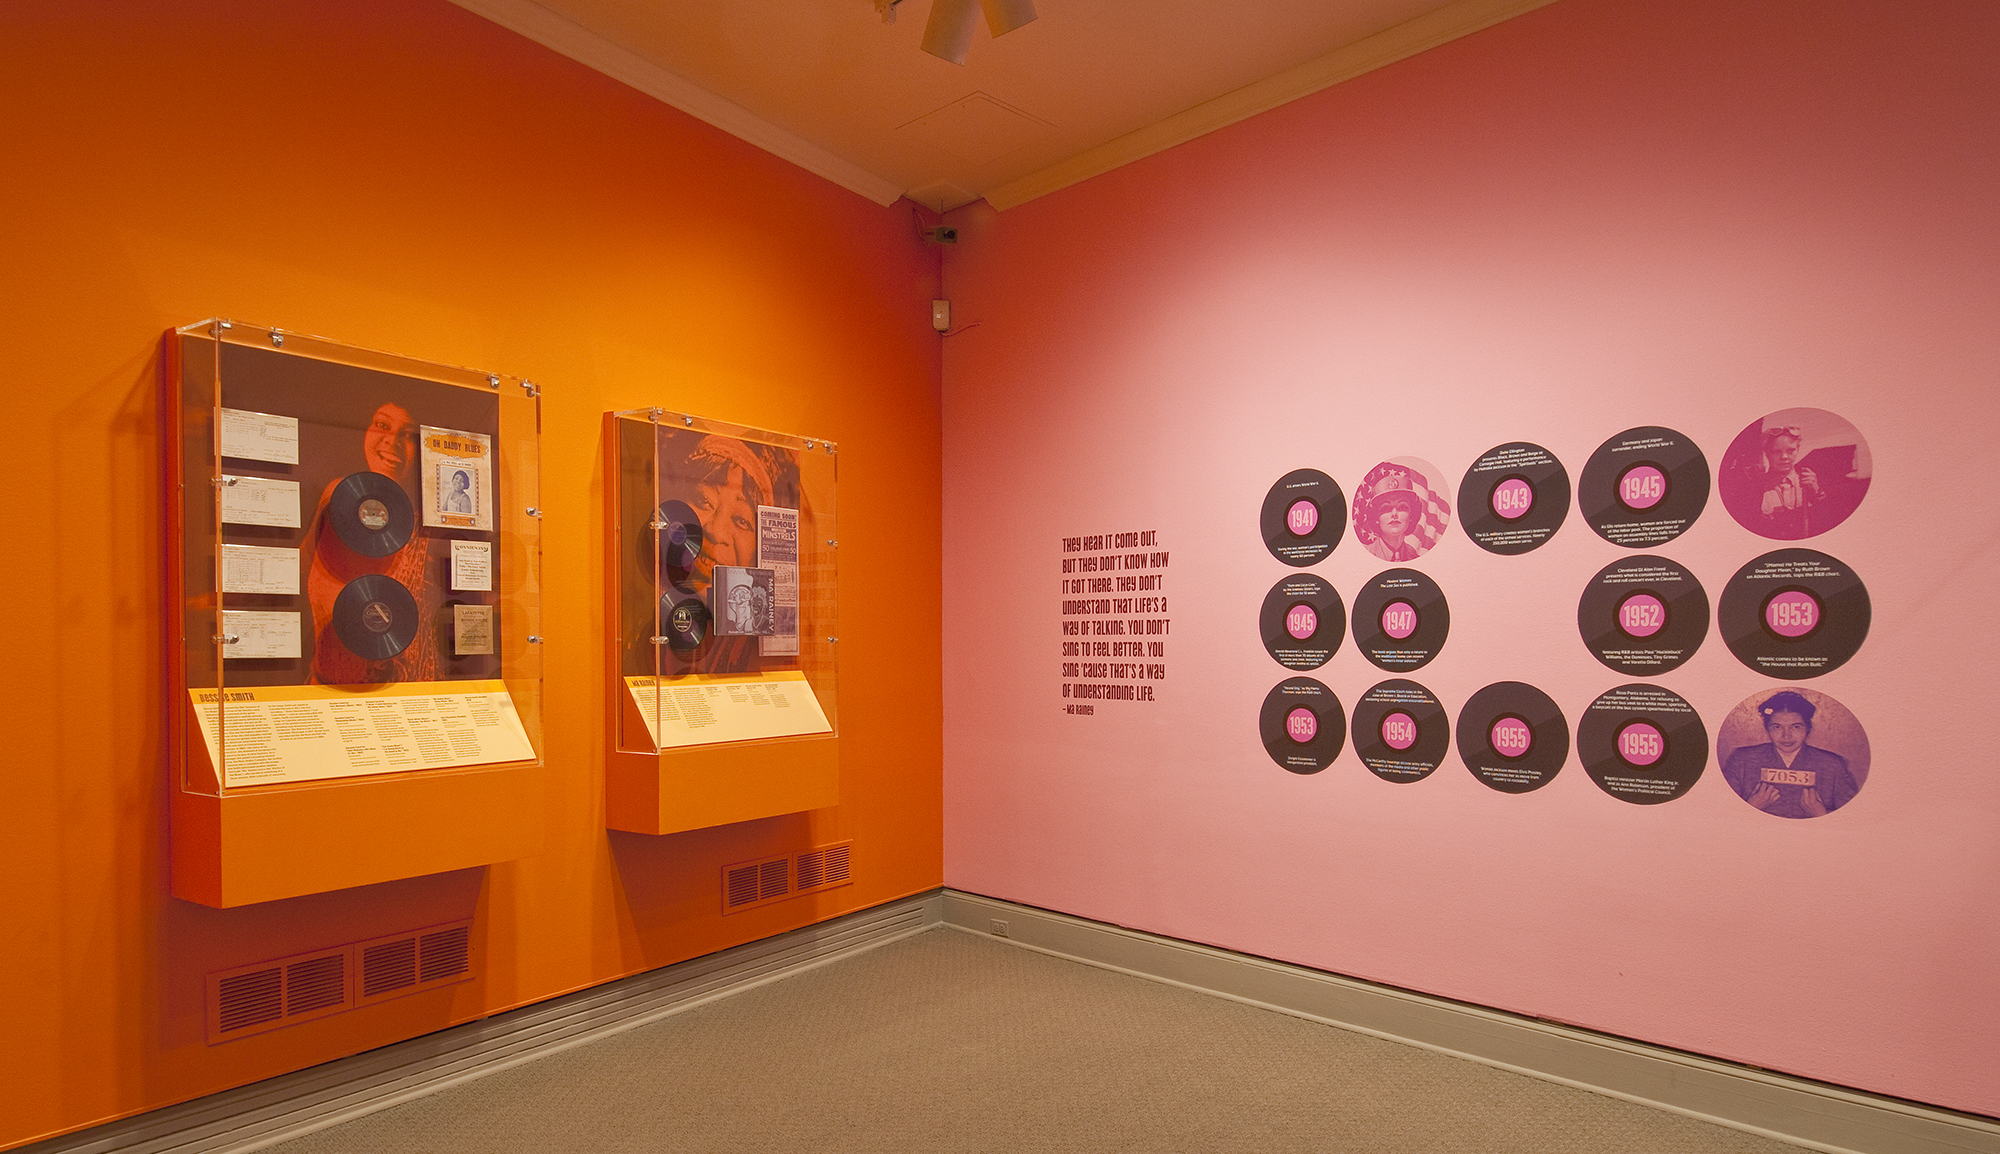 Gallery view showing an orange wall meeting a pink wall and records mounted on each.